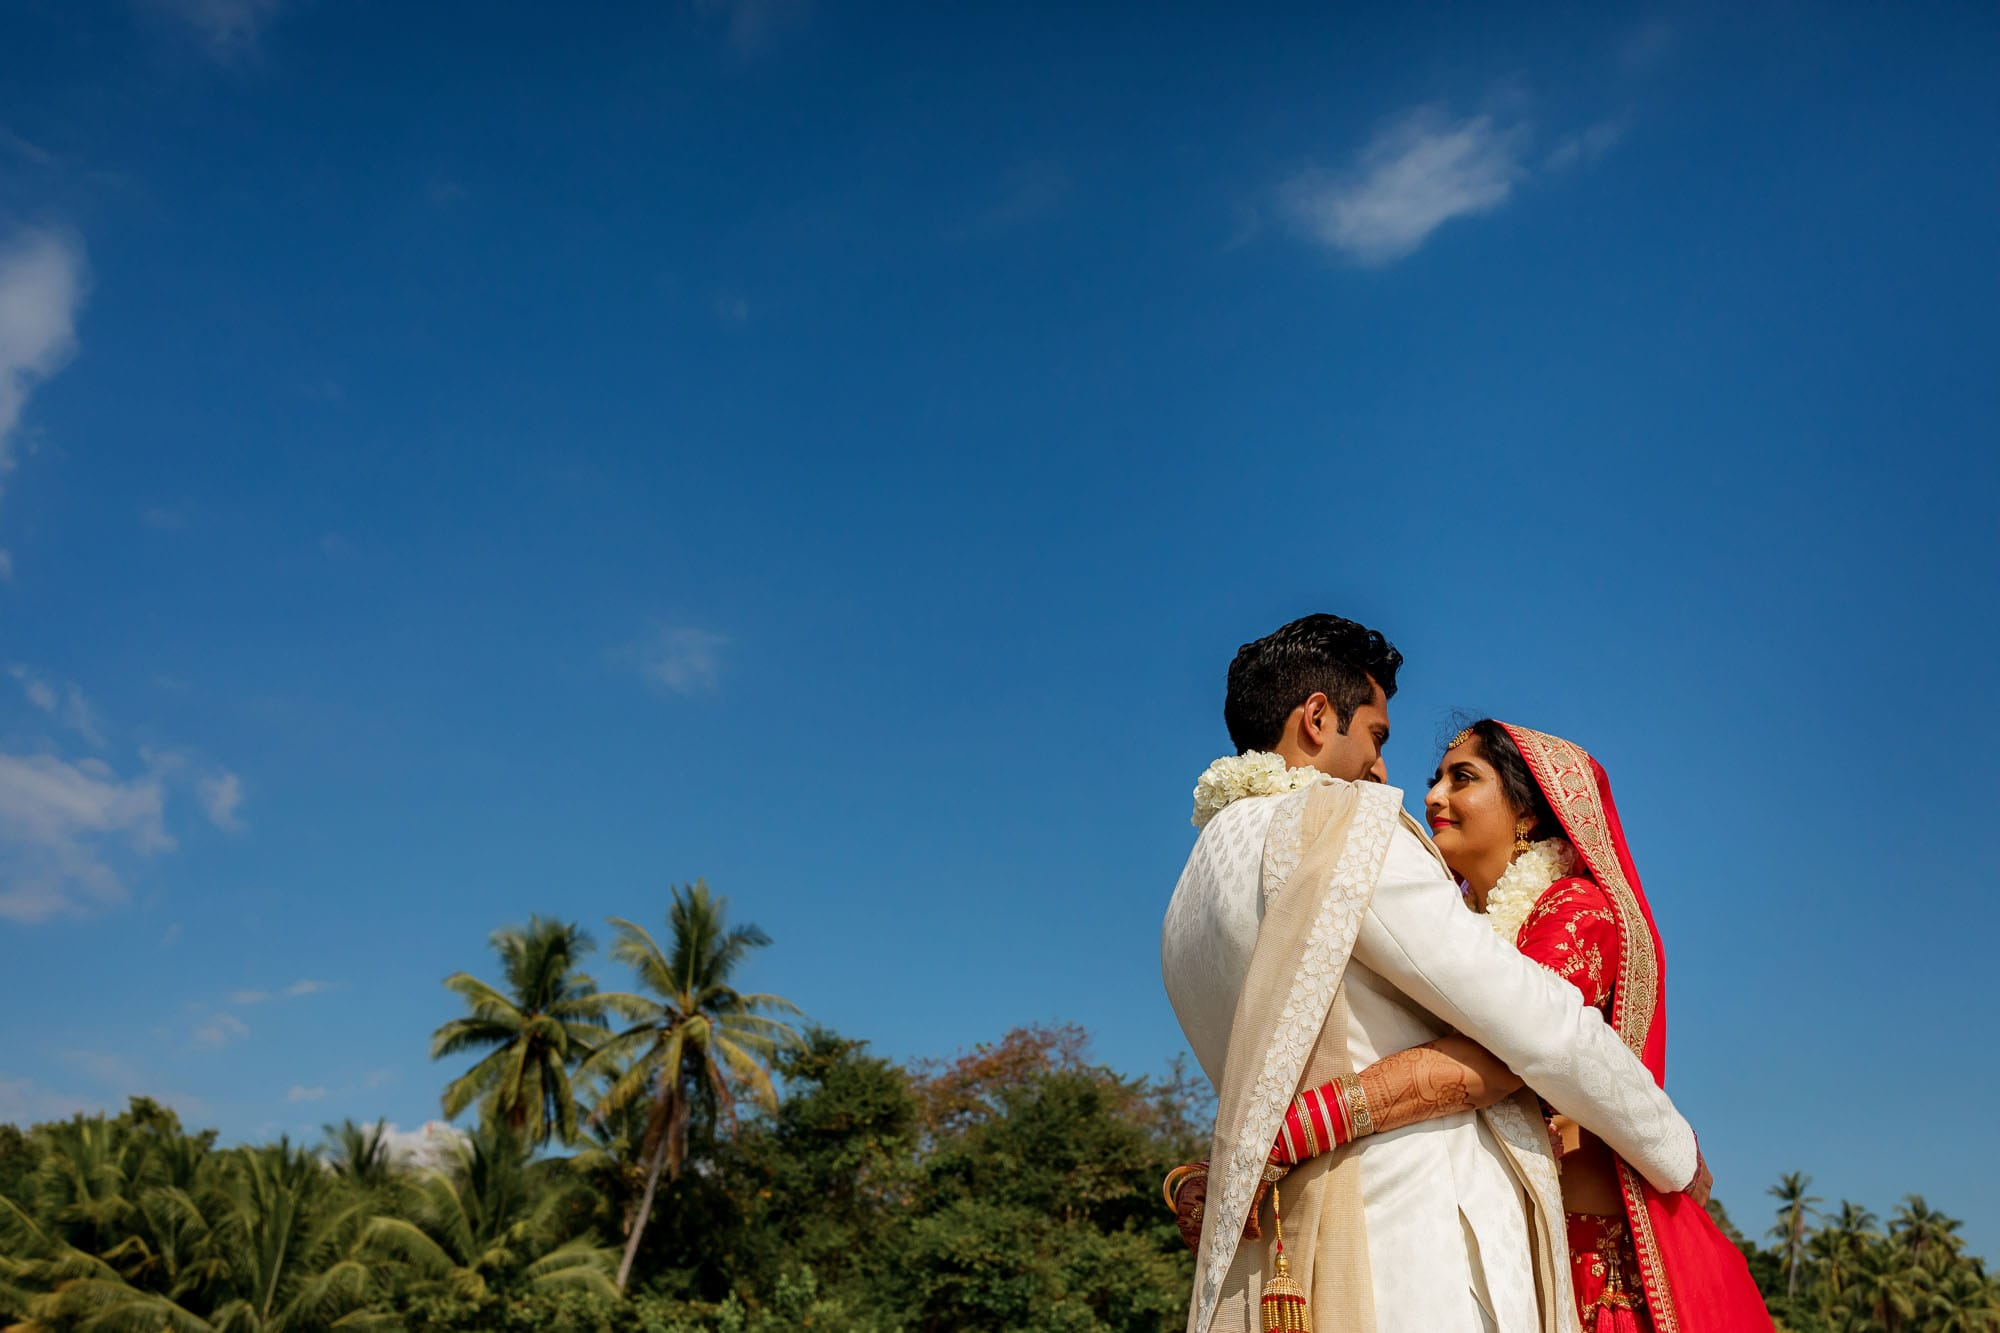 The bride and groom on the beach in traditional Hindu garb